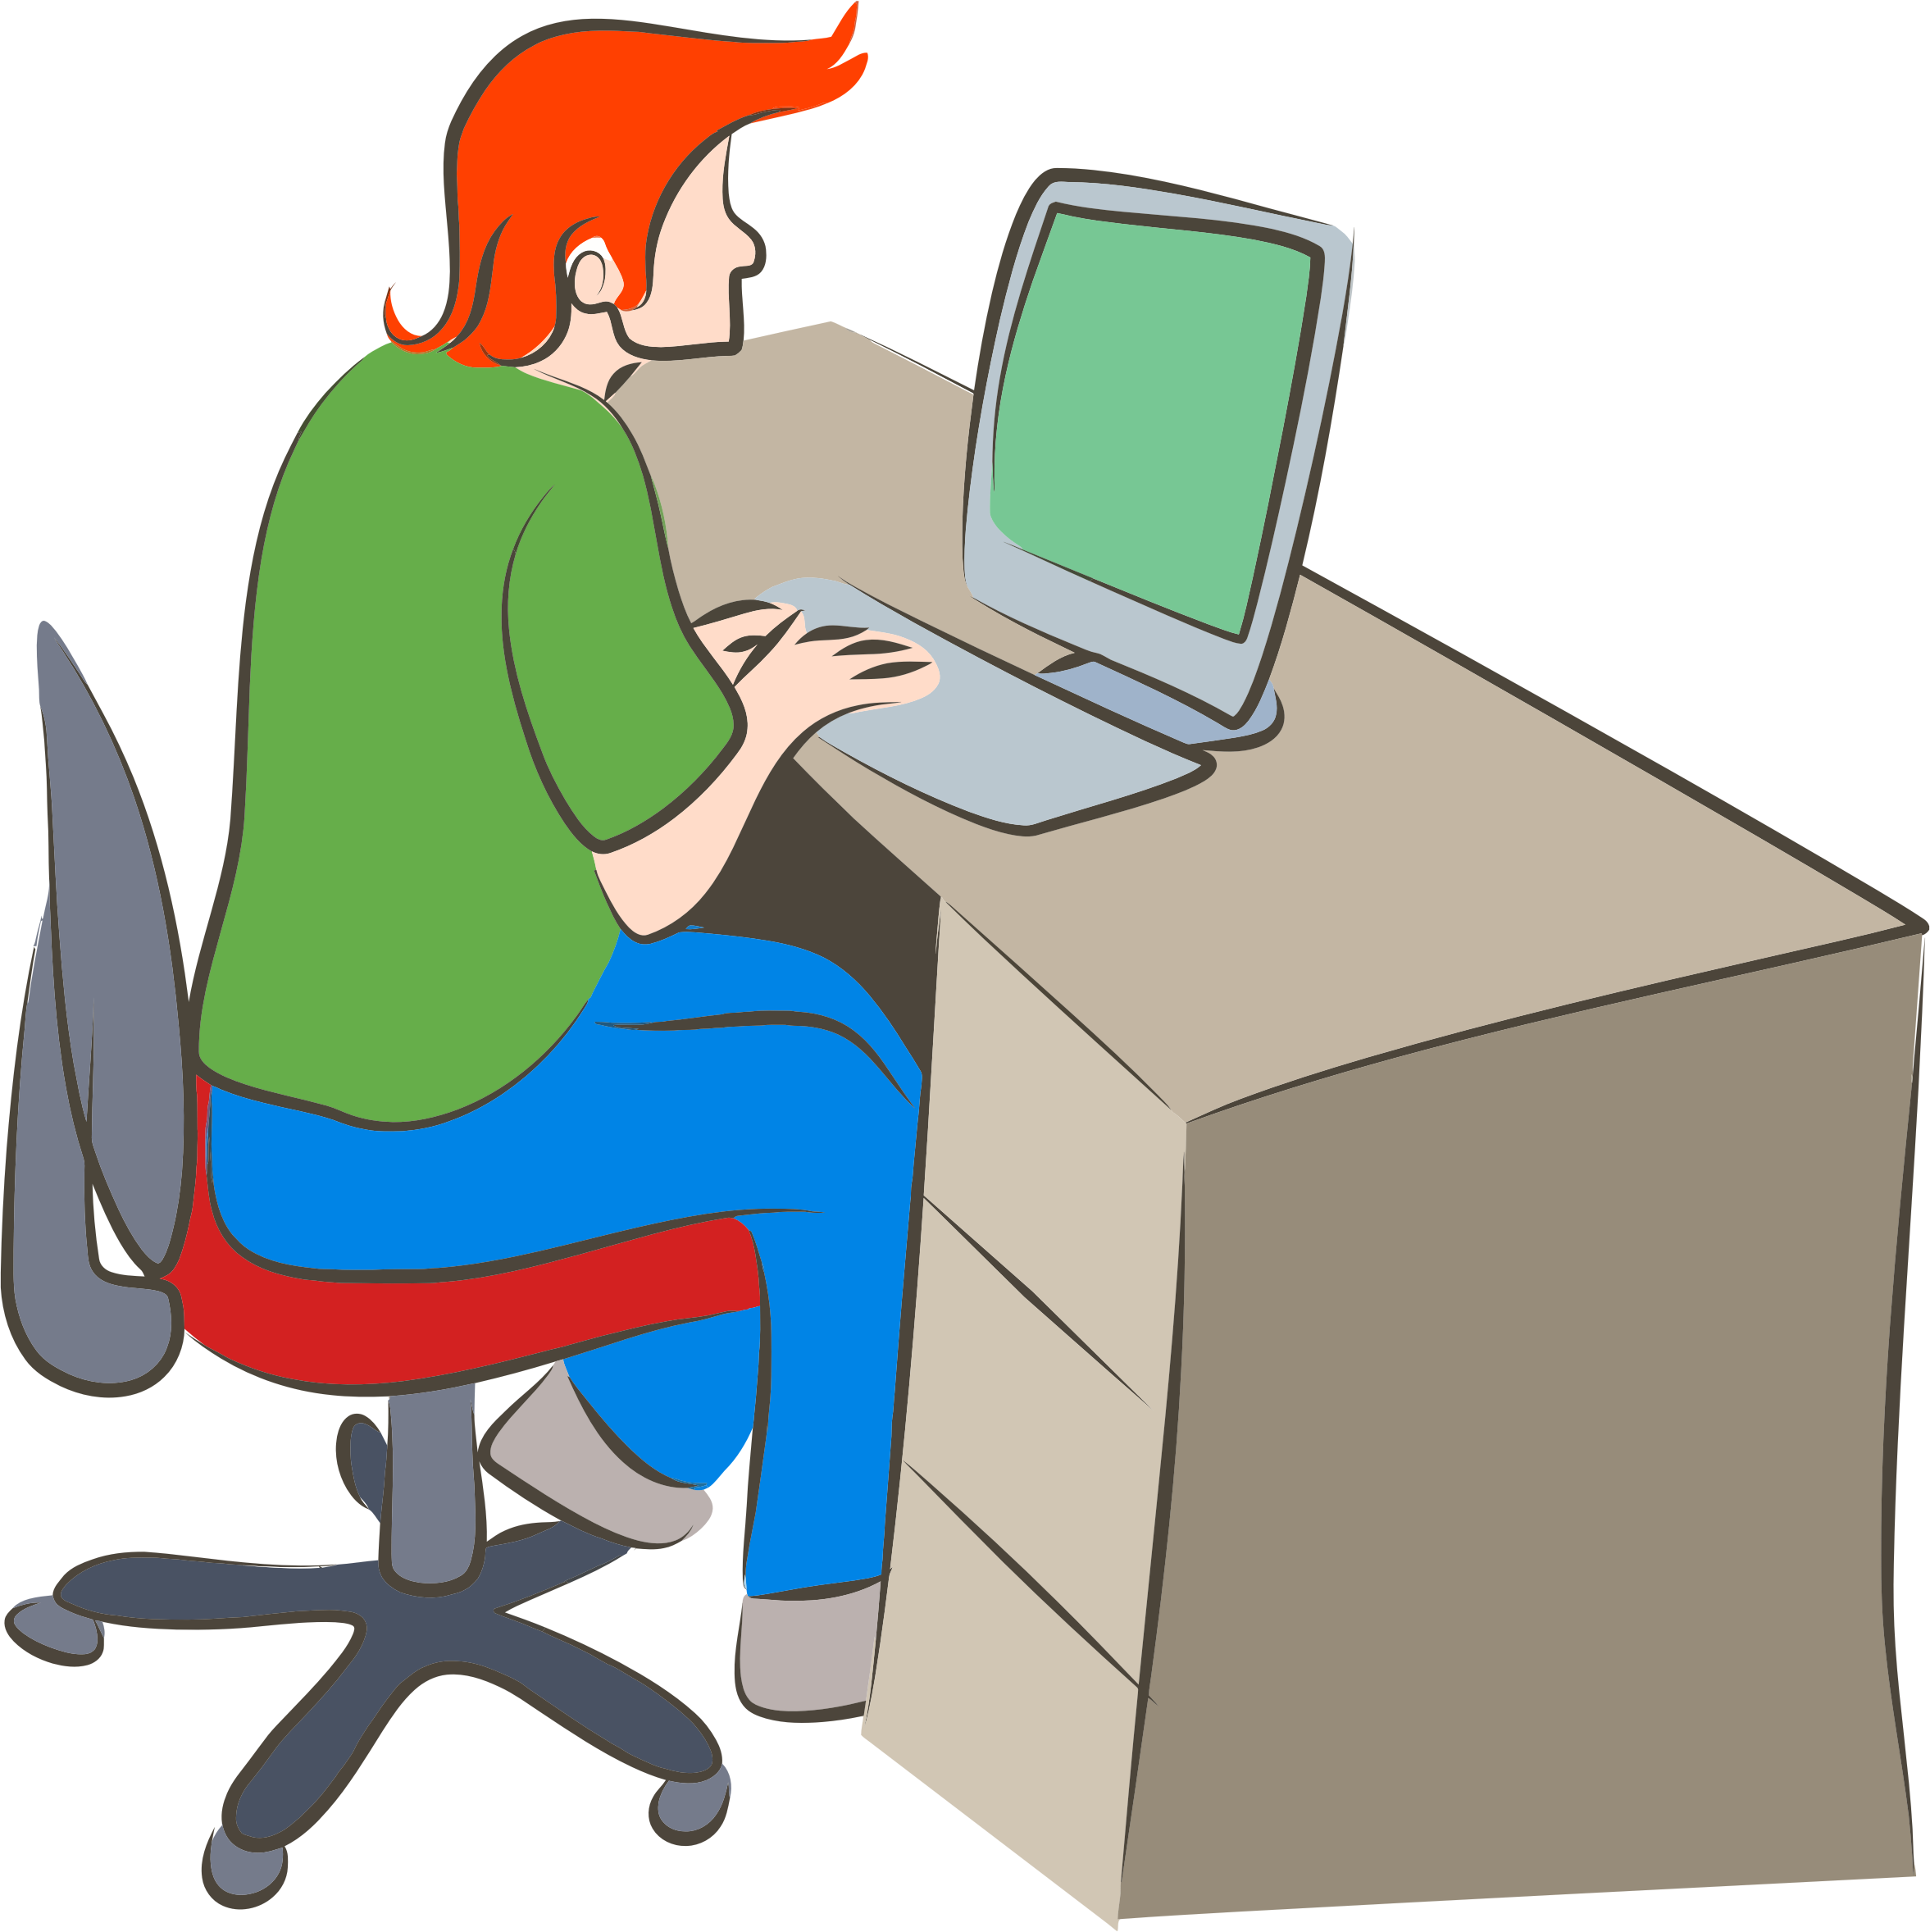 Use Computer PNG - 81619